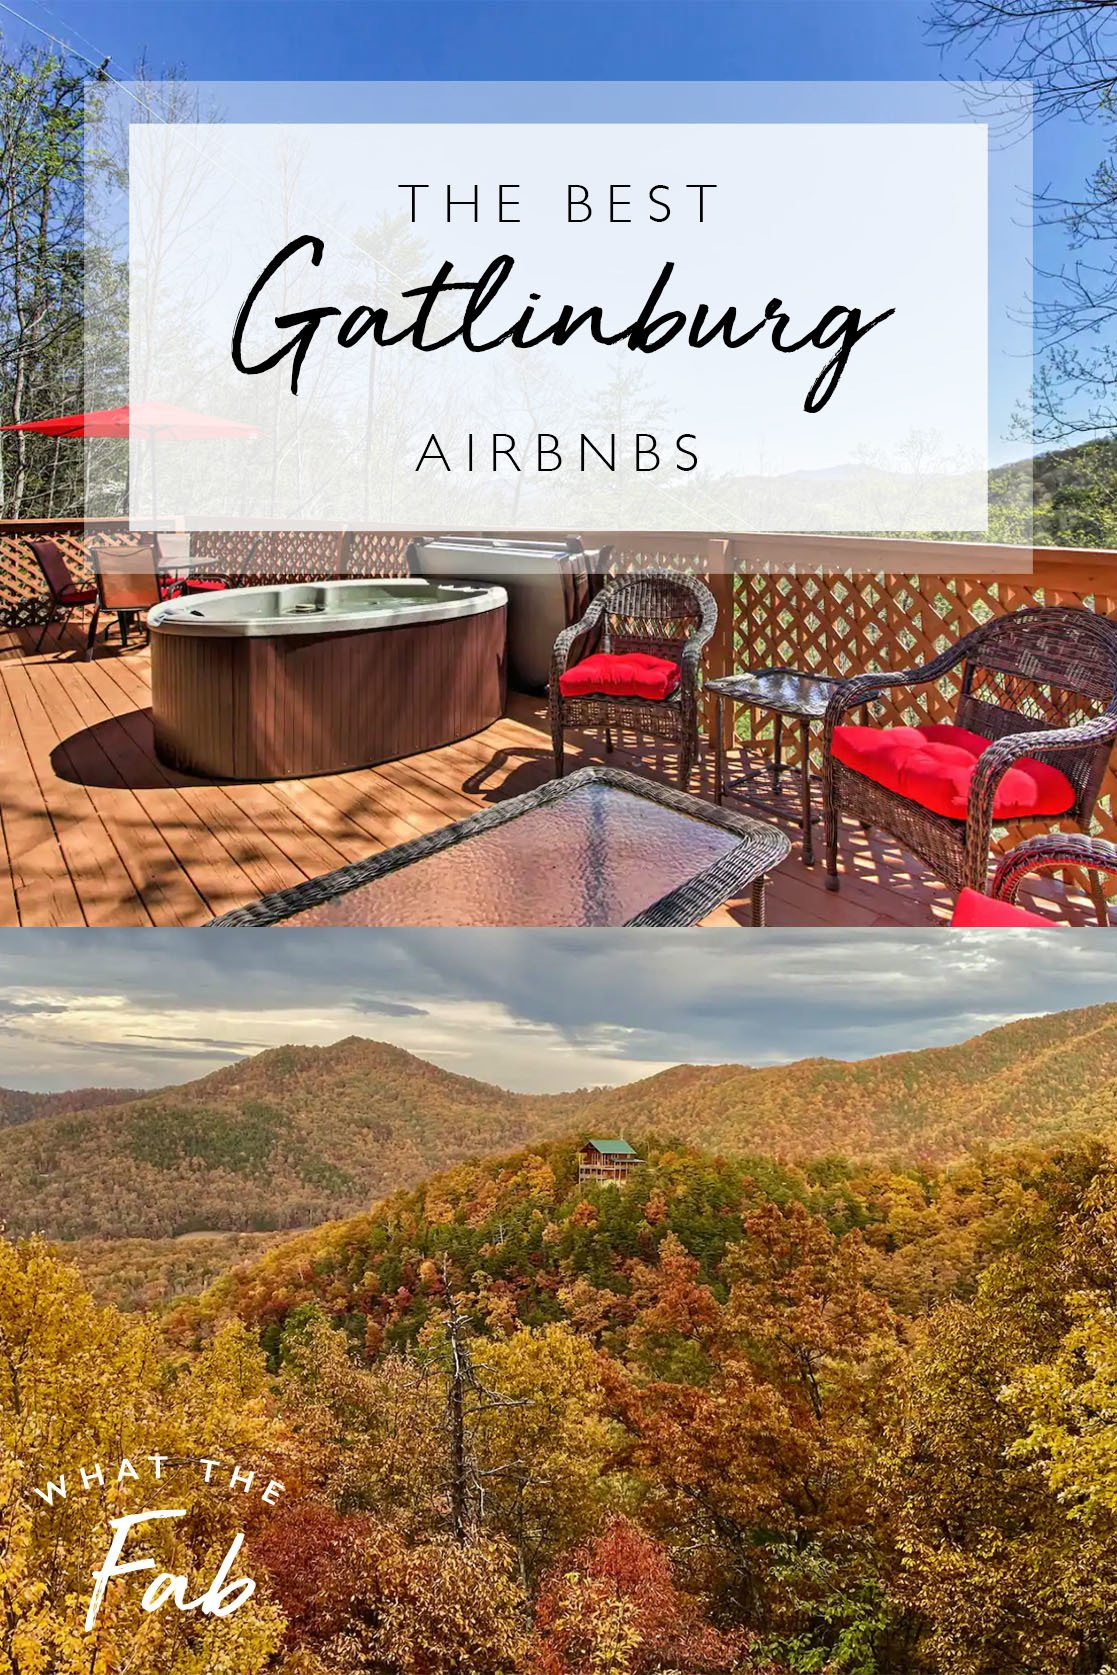 Gatlinburg Airbnbs, by Travel Blogger What The Fab